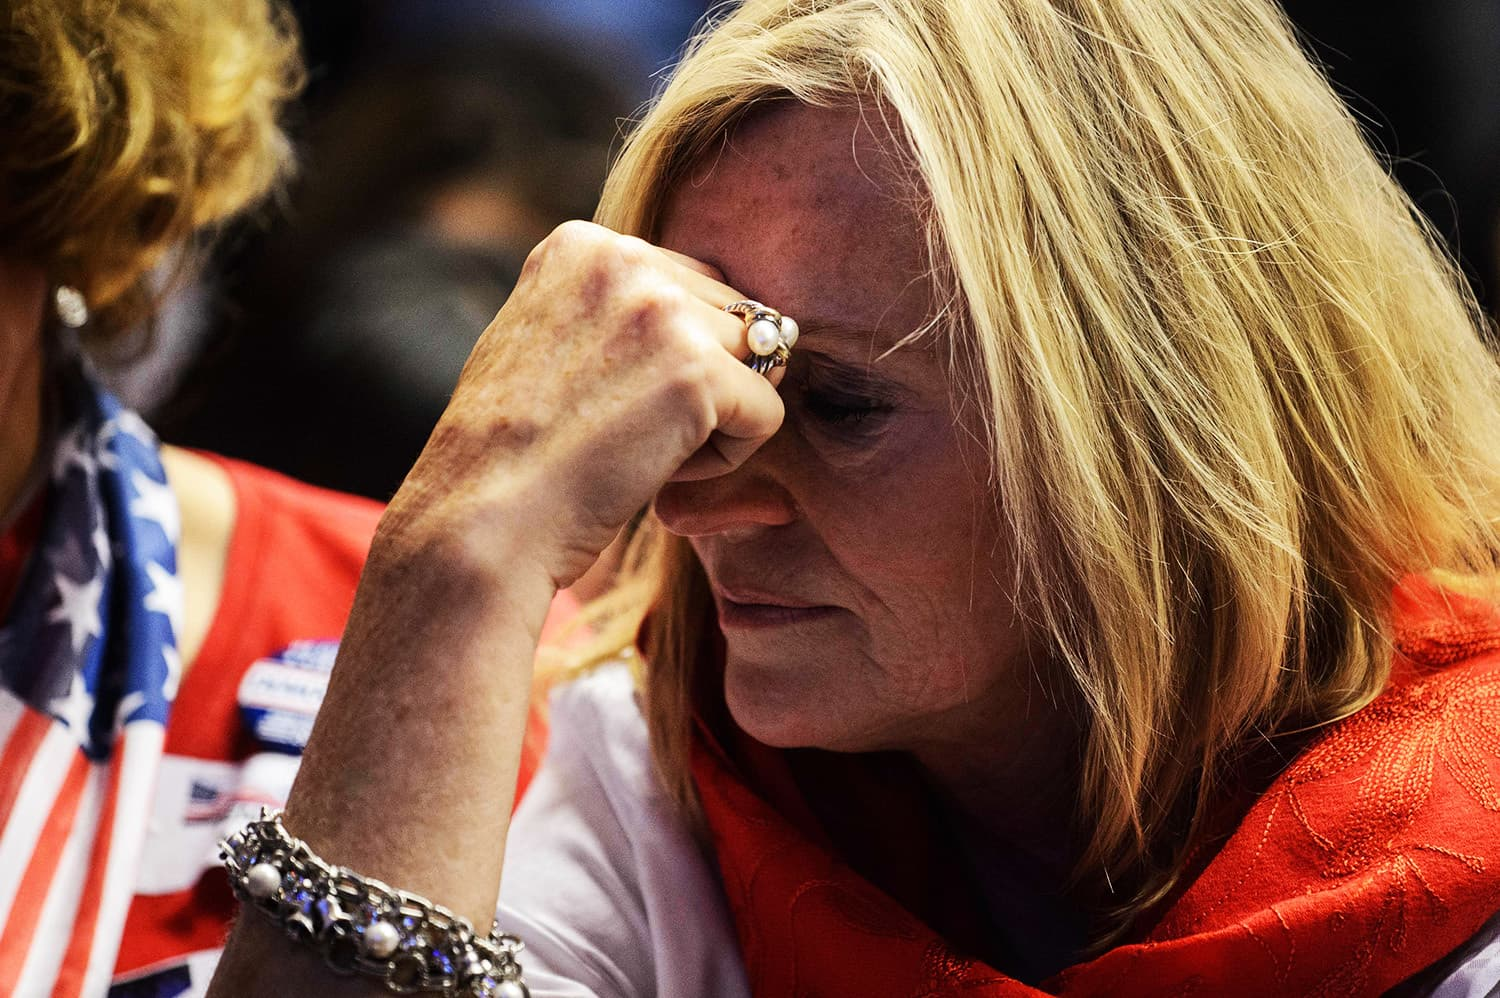 A supporter of Hillary Clinton reacts as she watches live coverage of the US elections.—AFP